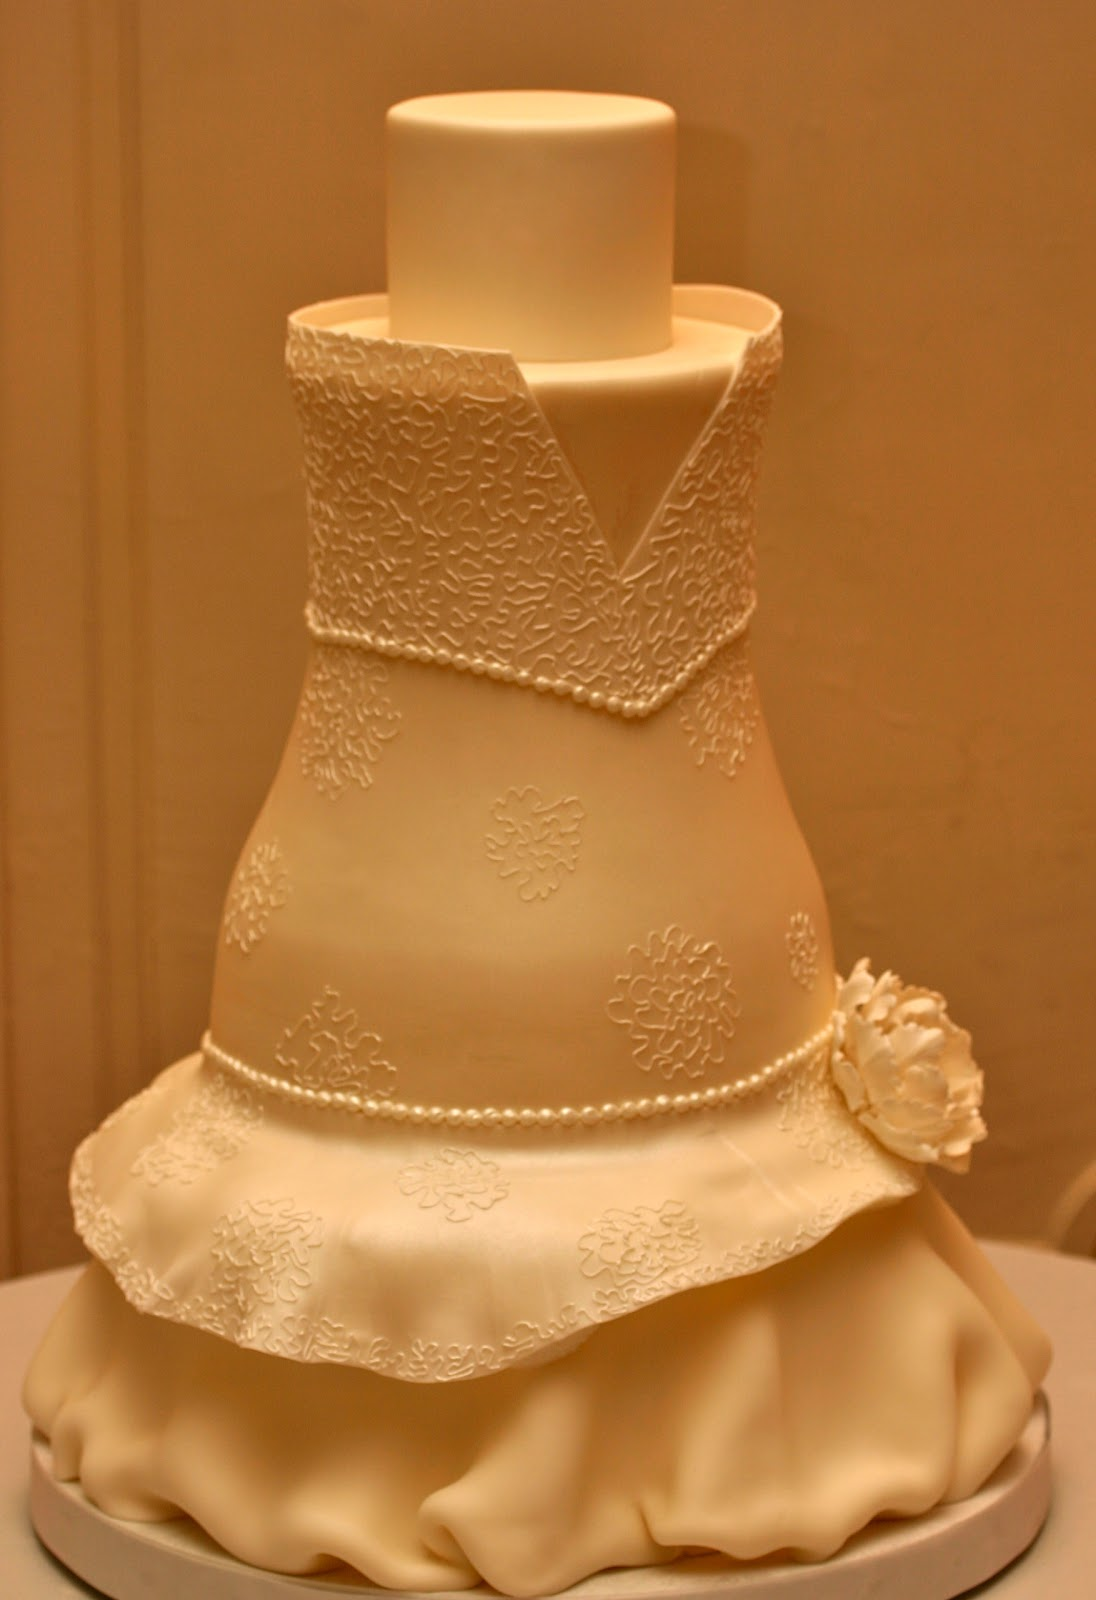 confectionery designs wedding dress inspired cakes